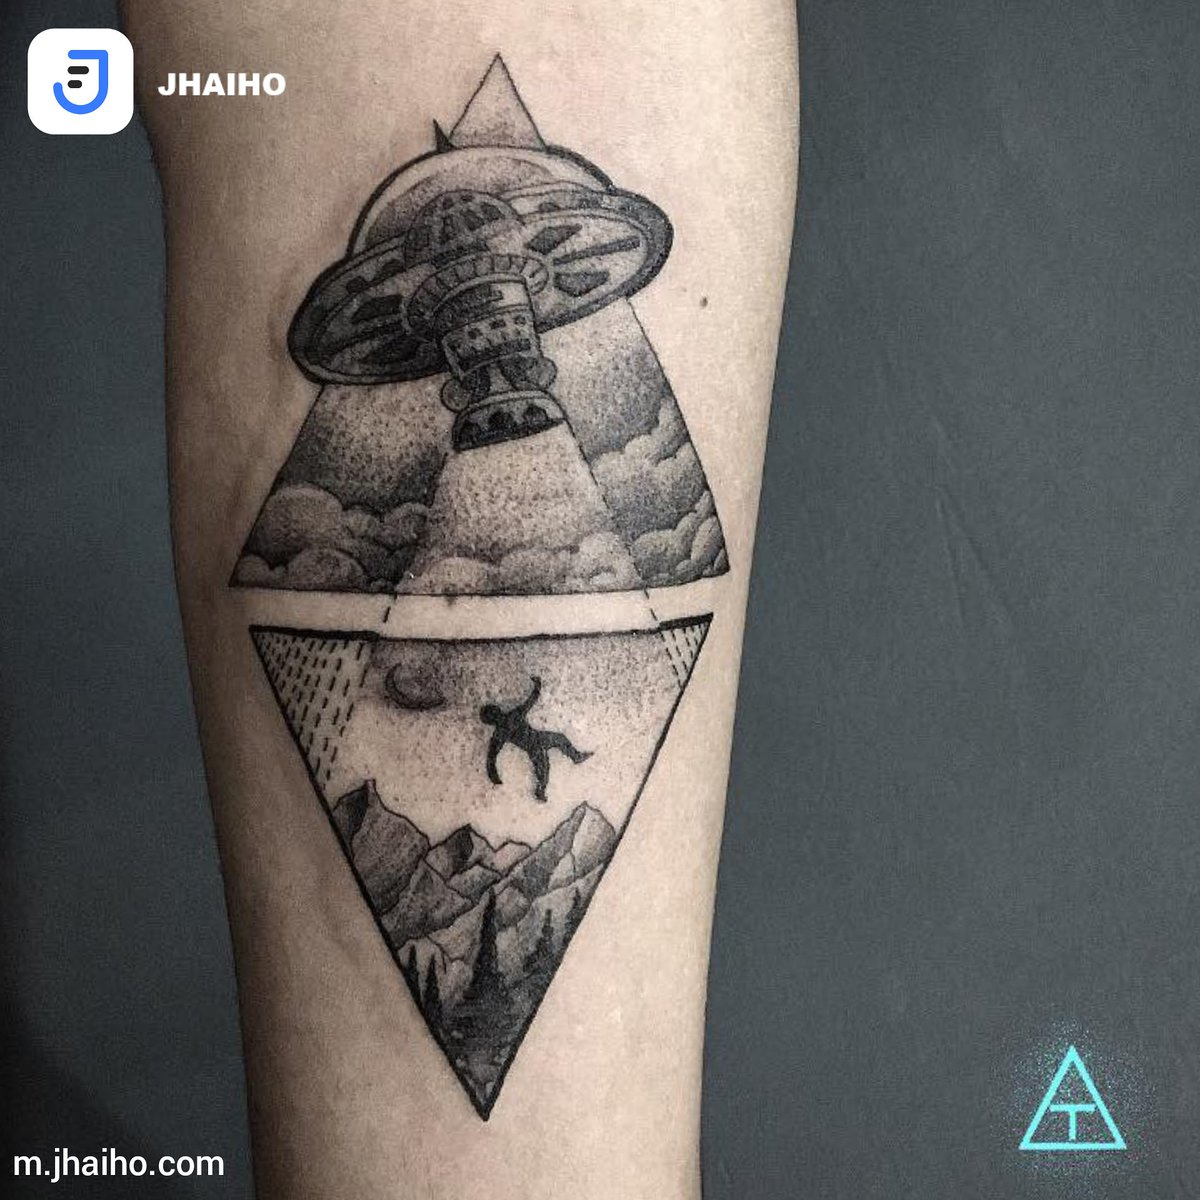 381a7709c Visit https://m.jhaiho.com/birthmarktattoocustoms/about … for more! #jhaiho  #getinked #btnc #birthmarktattoosncustoms #tattoo #artist #alien #spaceship  #ufo ...